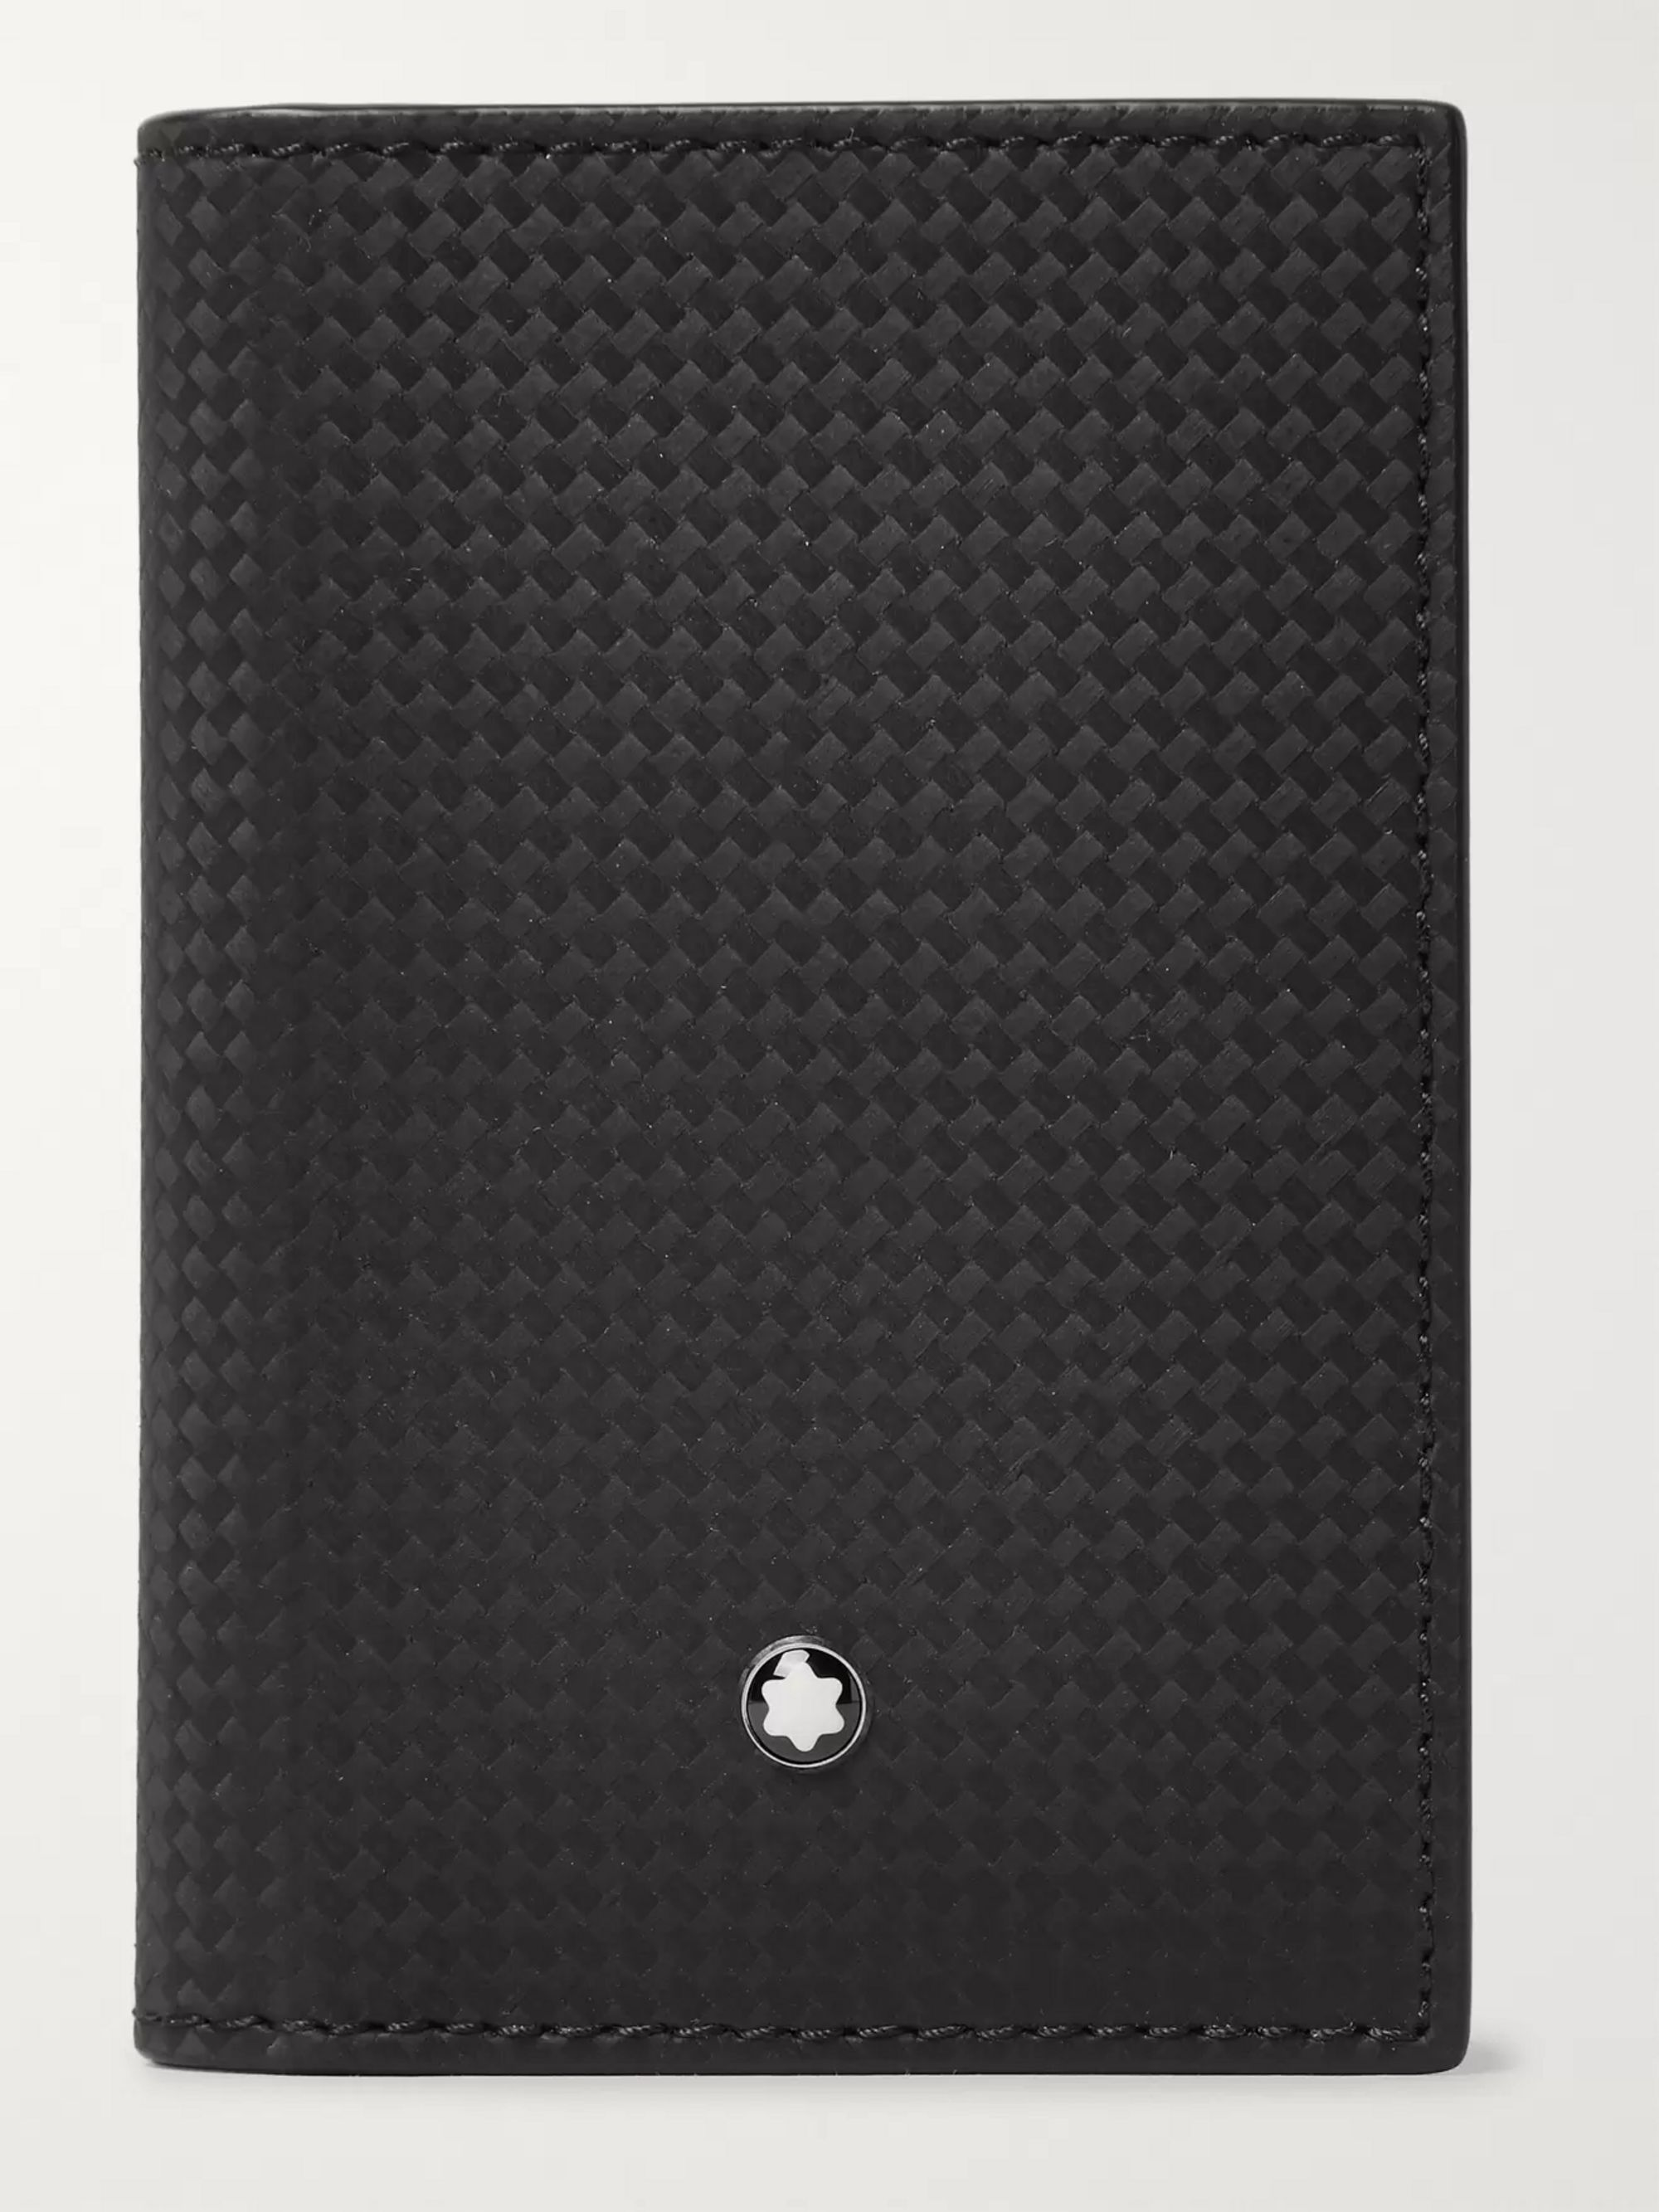 Montblanc Westside Extreme Textured-Leather Cardholder